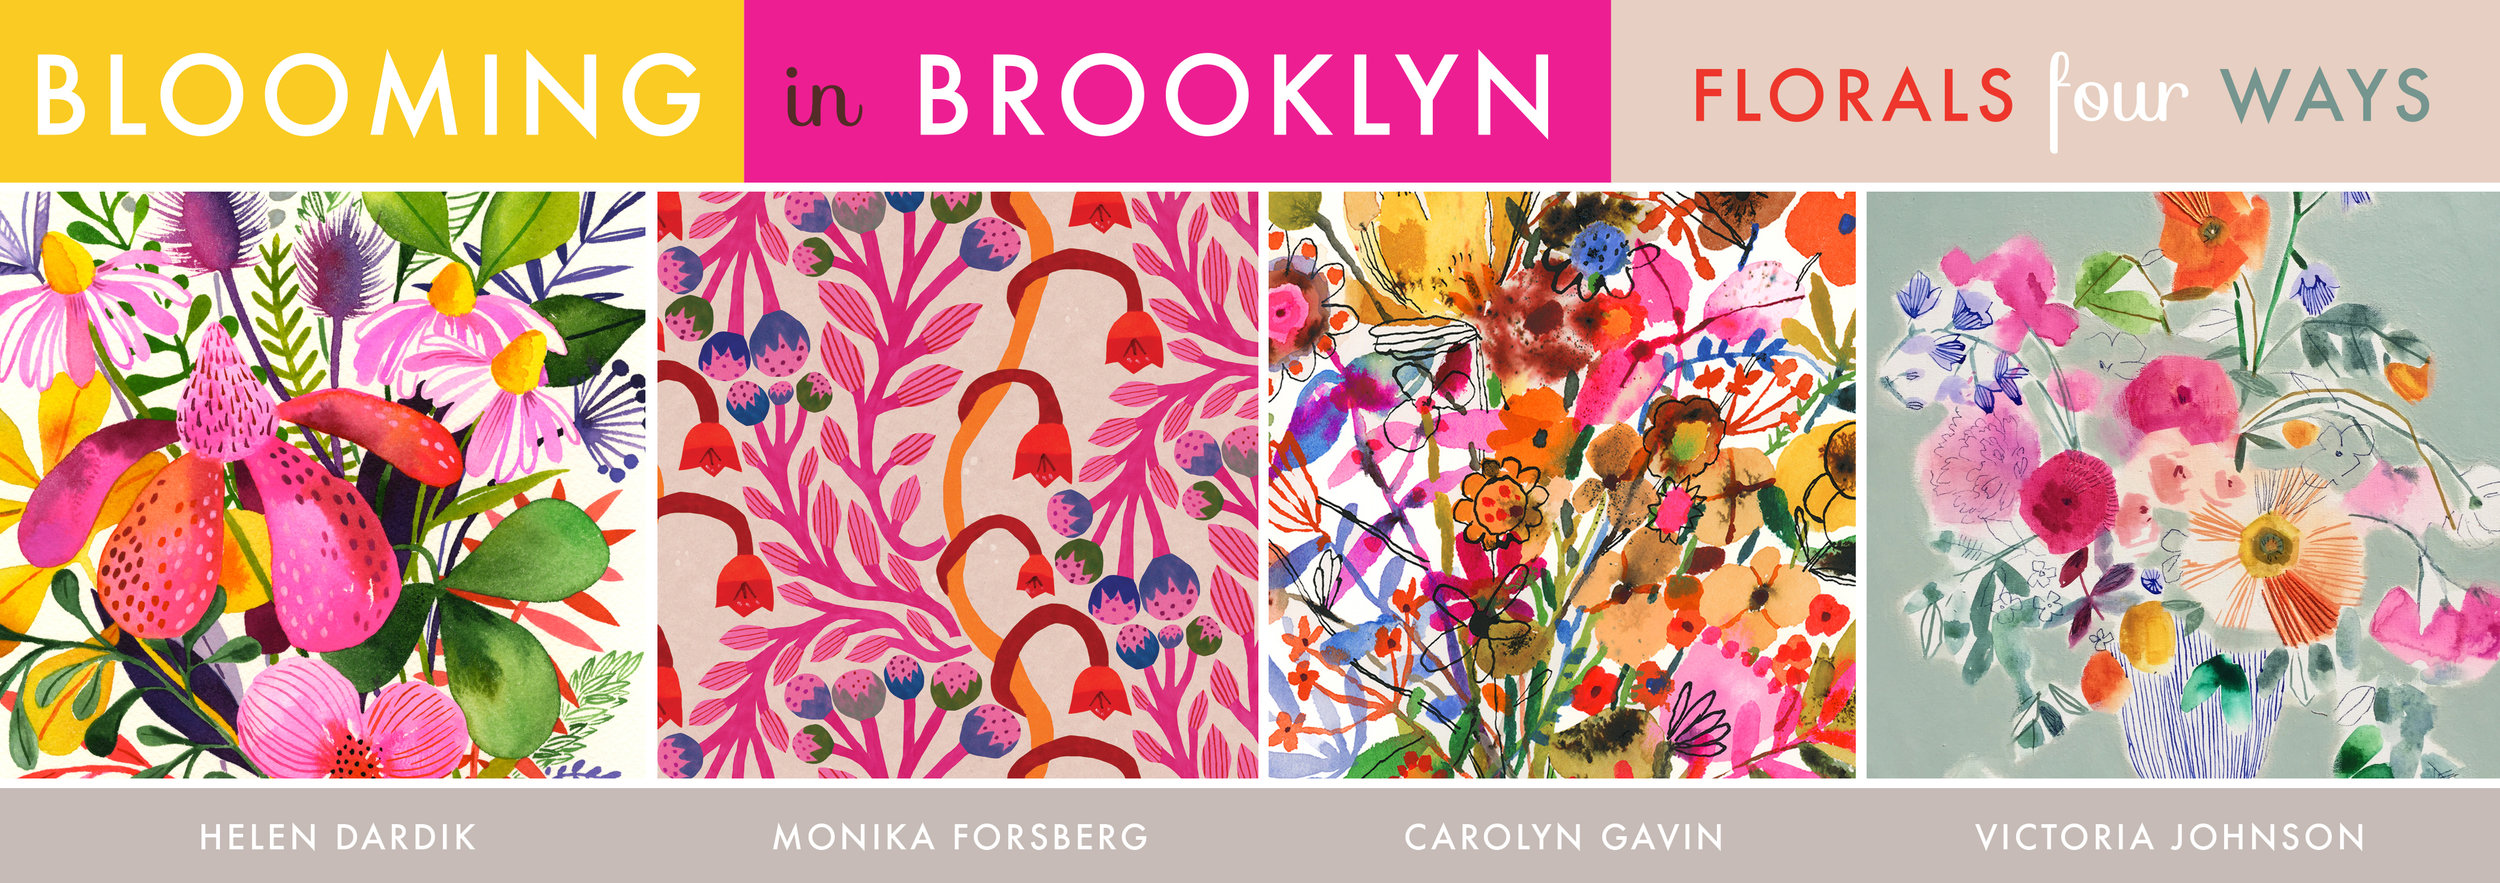 BrooklynWorkshop_header_1.jpg